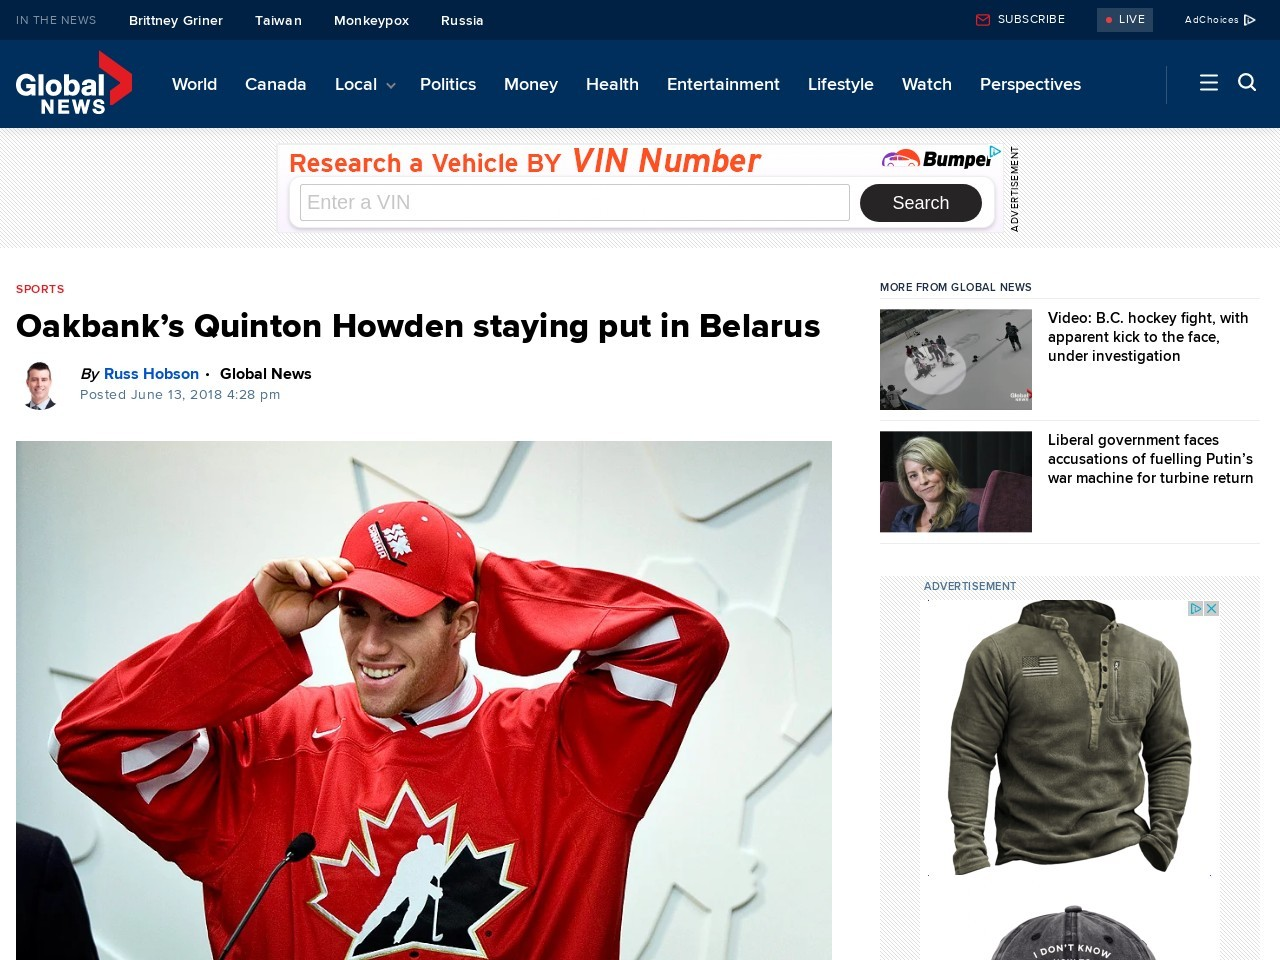 Oakbank's Quinton Howden staying put in Belarus